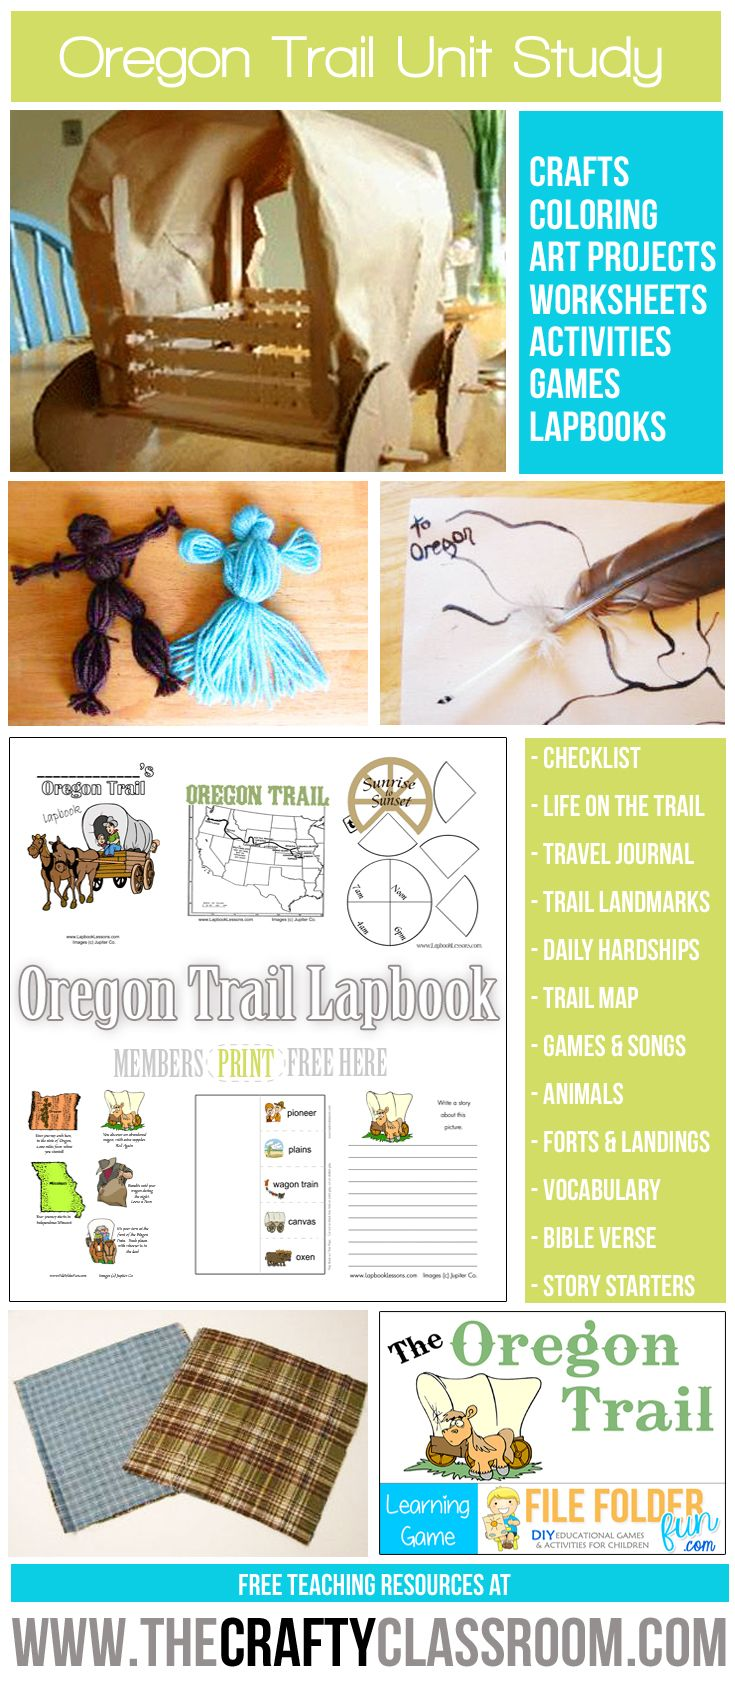 Oregon Trail Simulation Activity: Become a traveler on the Trail.